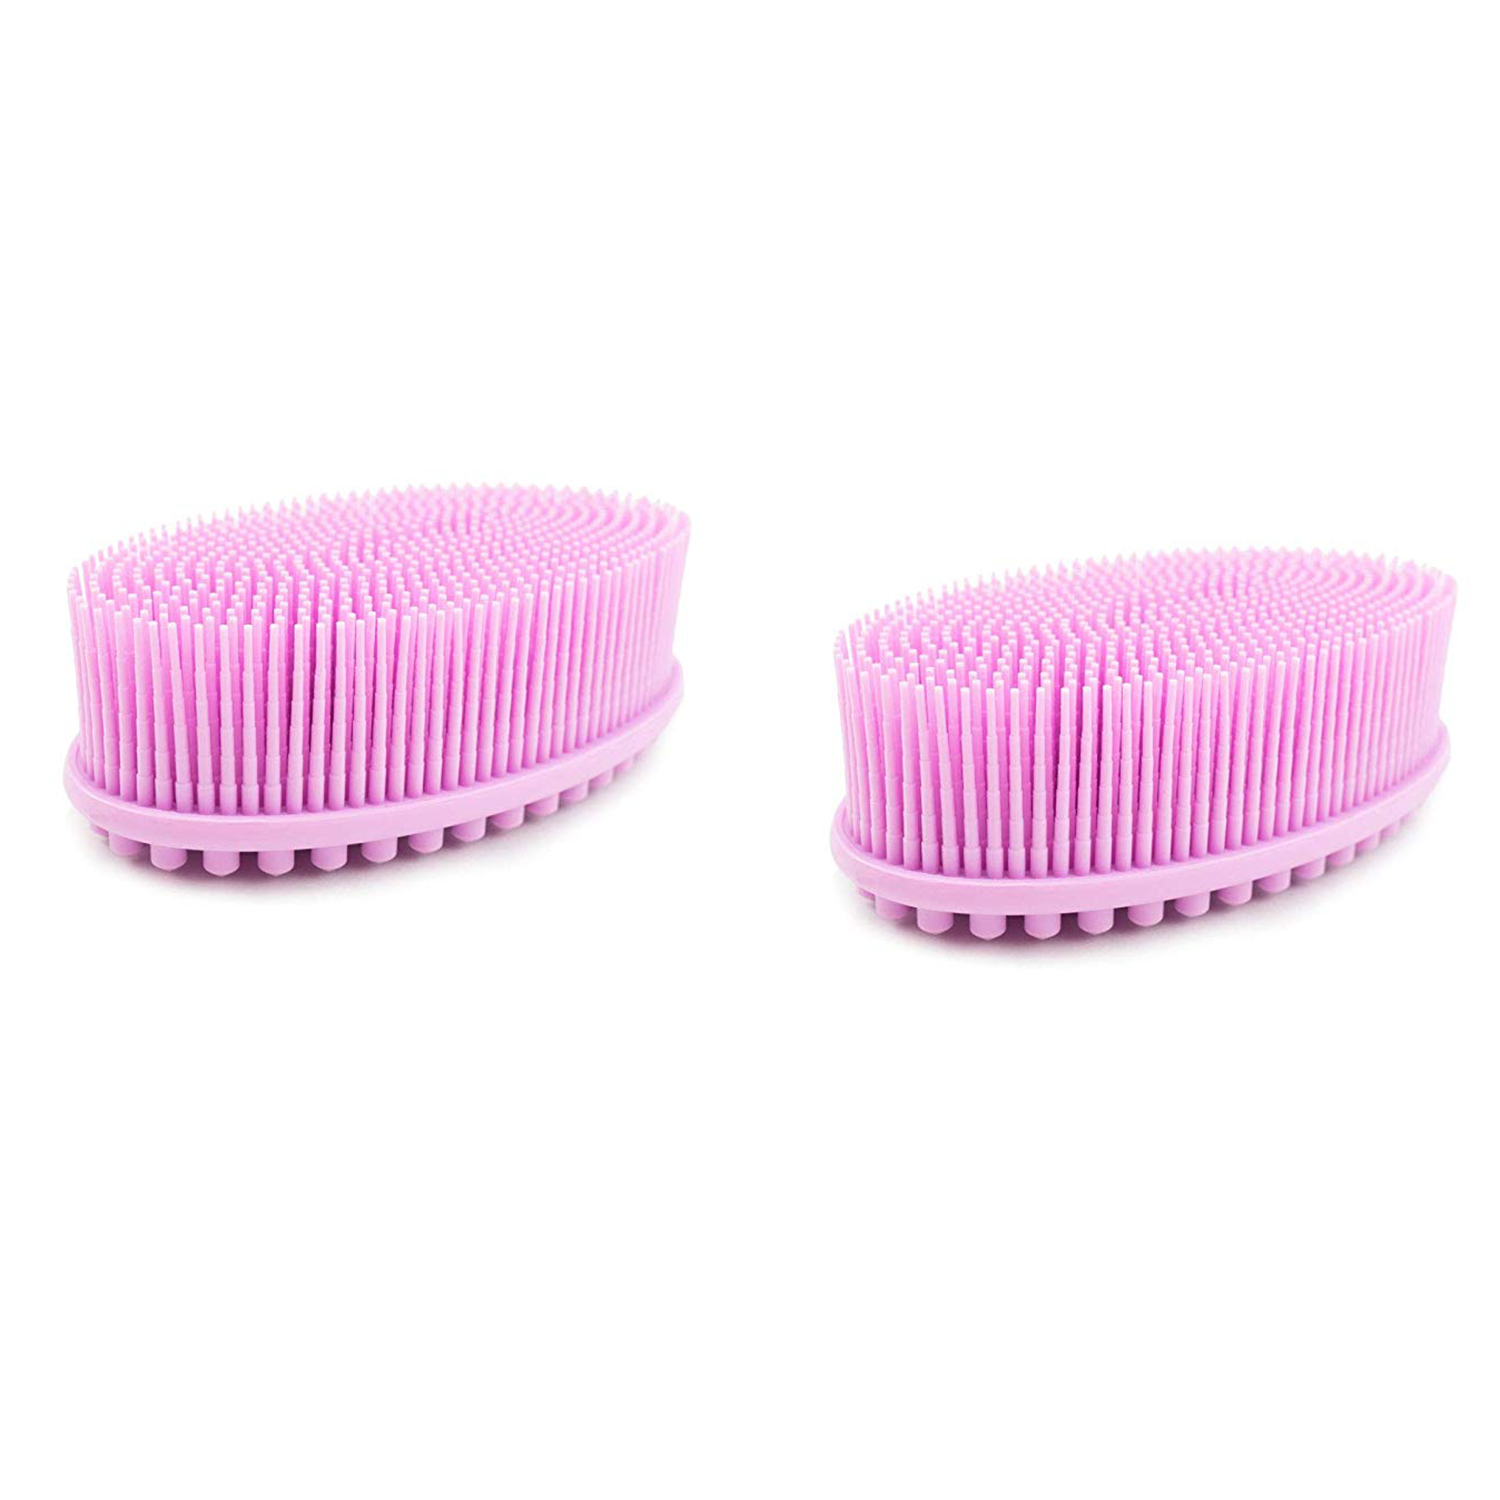 Bath and Shower Loofah Brush 2 in 1 Face and Body scrub Gentle body brush Skin 100% Better Scrubber silicone body brush for ba